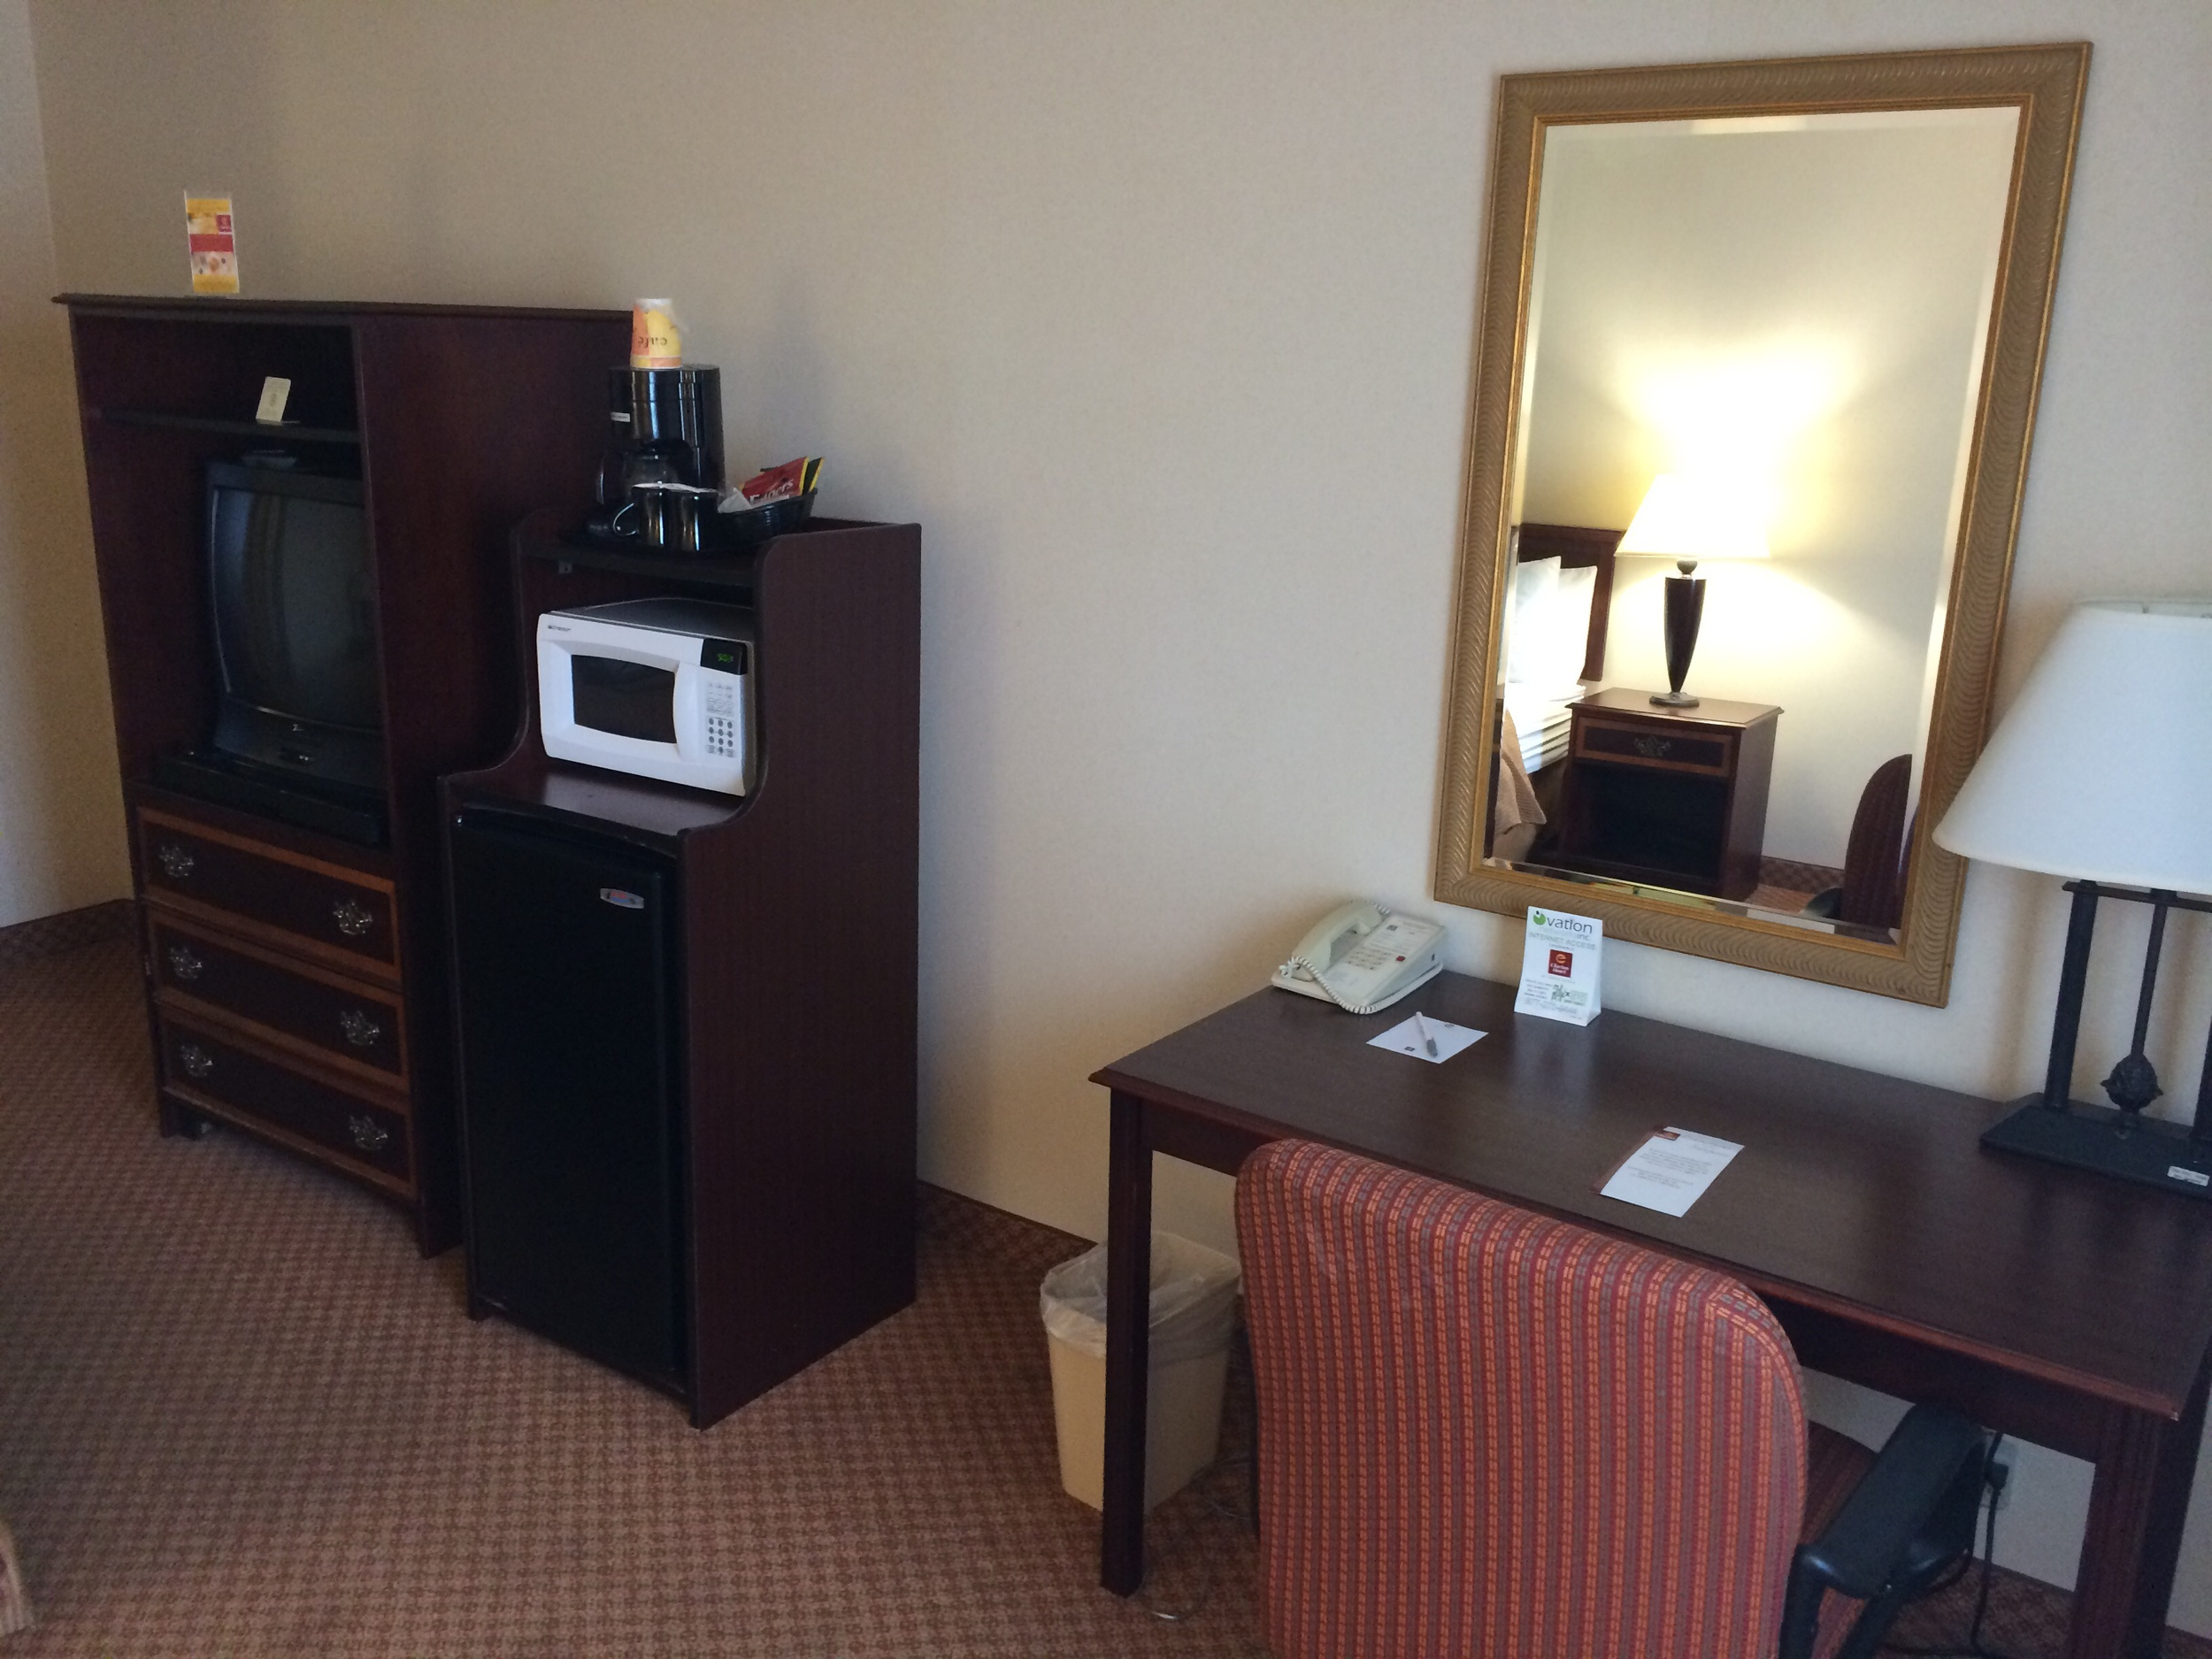 Requirements to make a hotel seem like home: fridge, microwave and coffee pot!